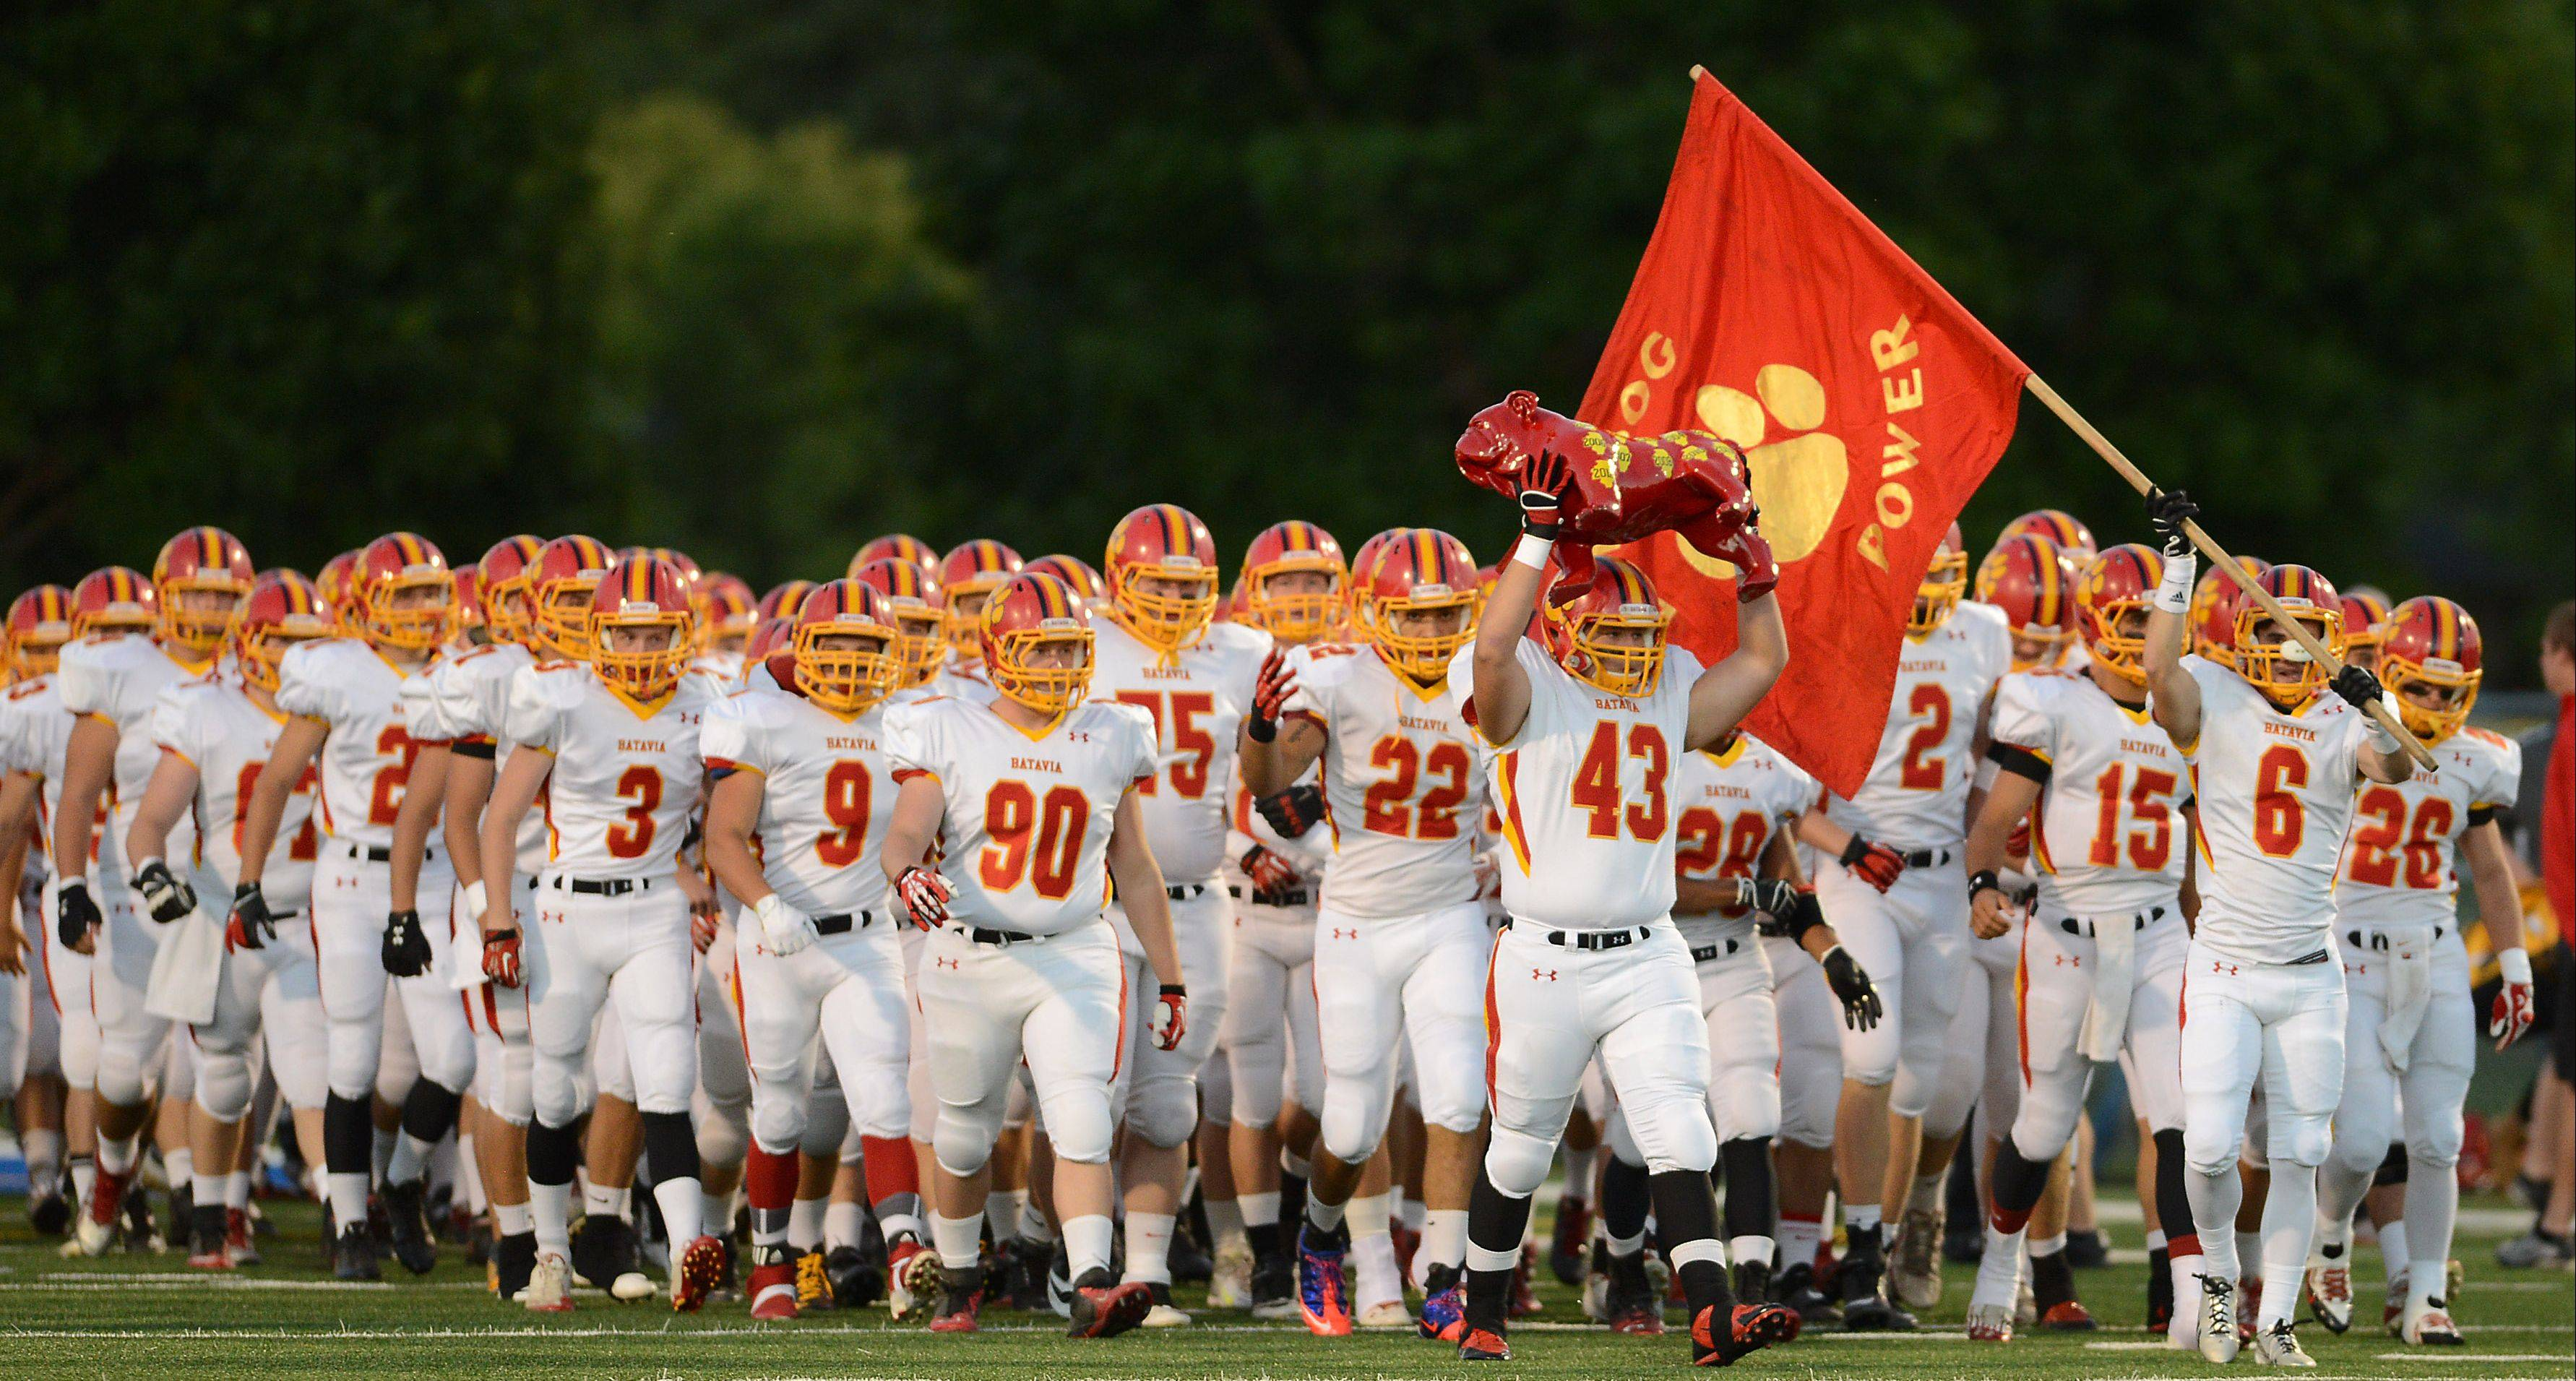 Batavia gets ready to take the field Friday at Geneva.